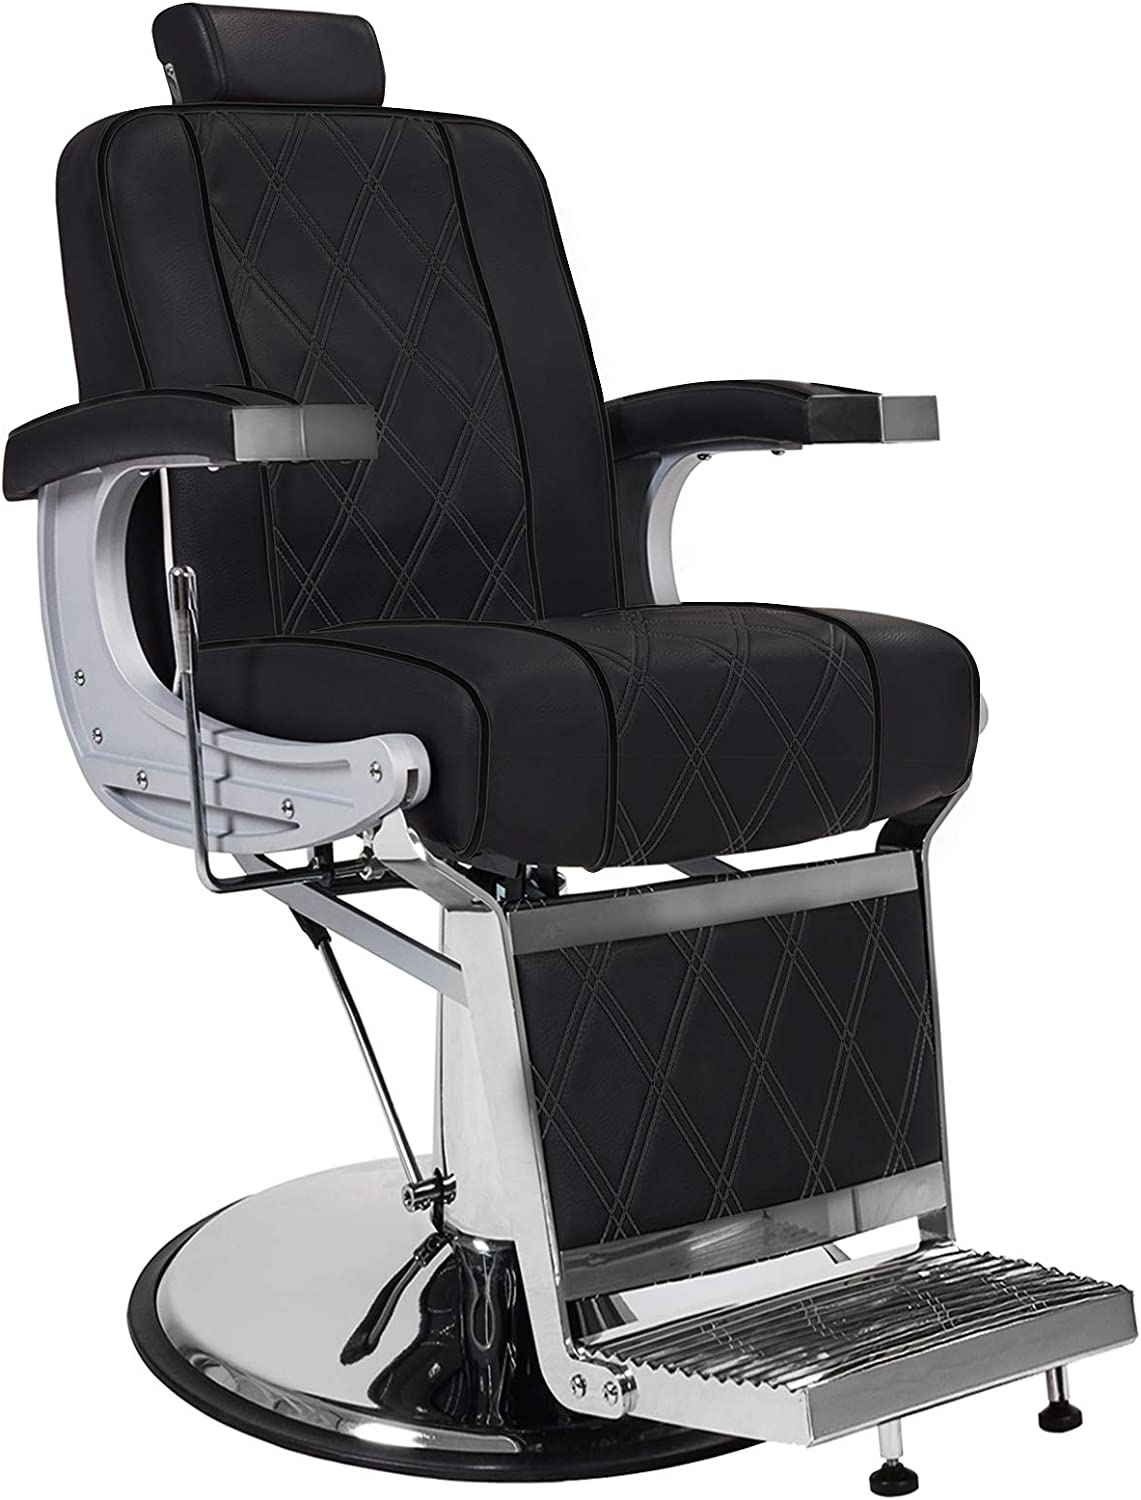 Greenlife Salon Barber Chair Luxurious Hydraulic Styling Chair Spa Reclined Chair Rotatable Heavy Duty Amazon Ca Beauty